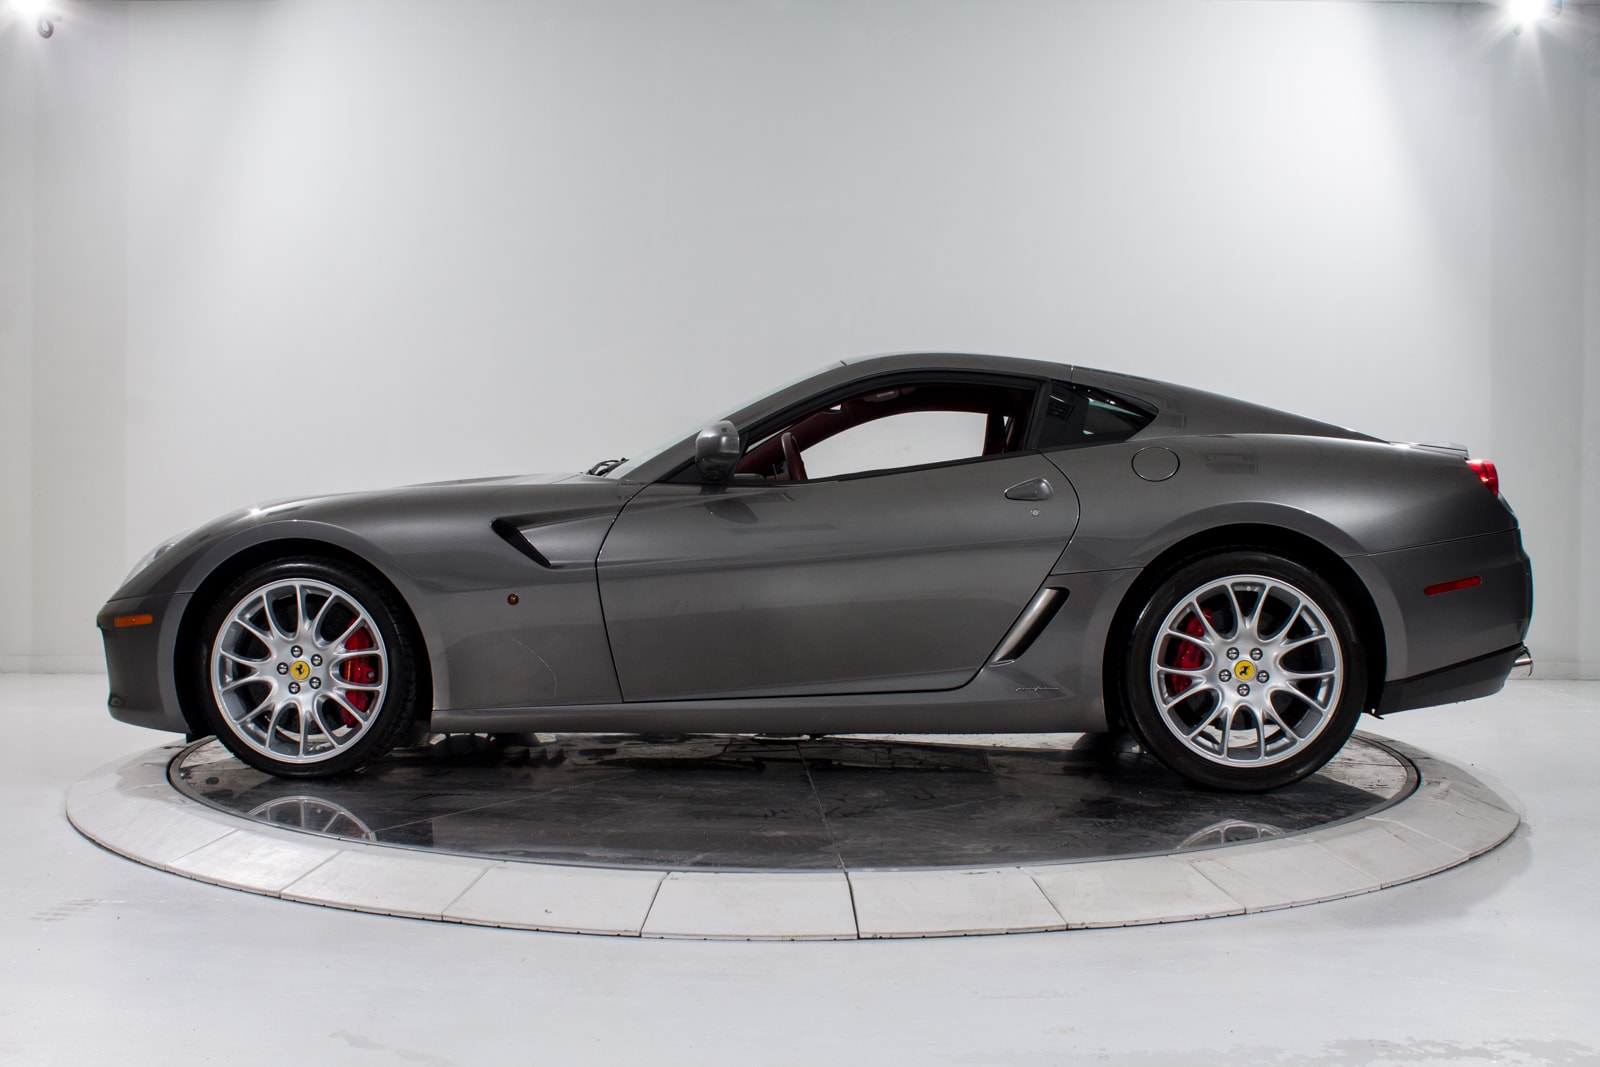 used 2009 ferrari 599 gtb f1 for sale plainview near long island ny vin zfffc60a990165718. Black Bedroom Furniture Sets. Home Design Ideas